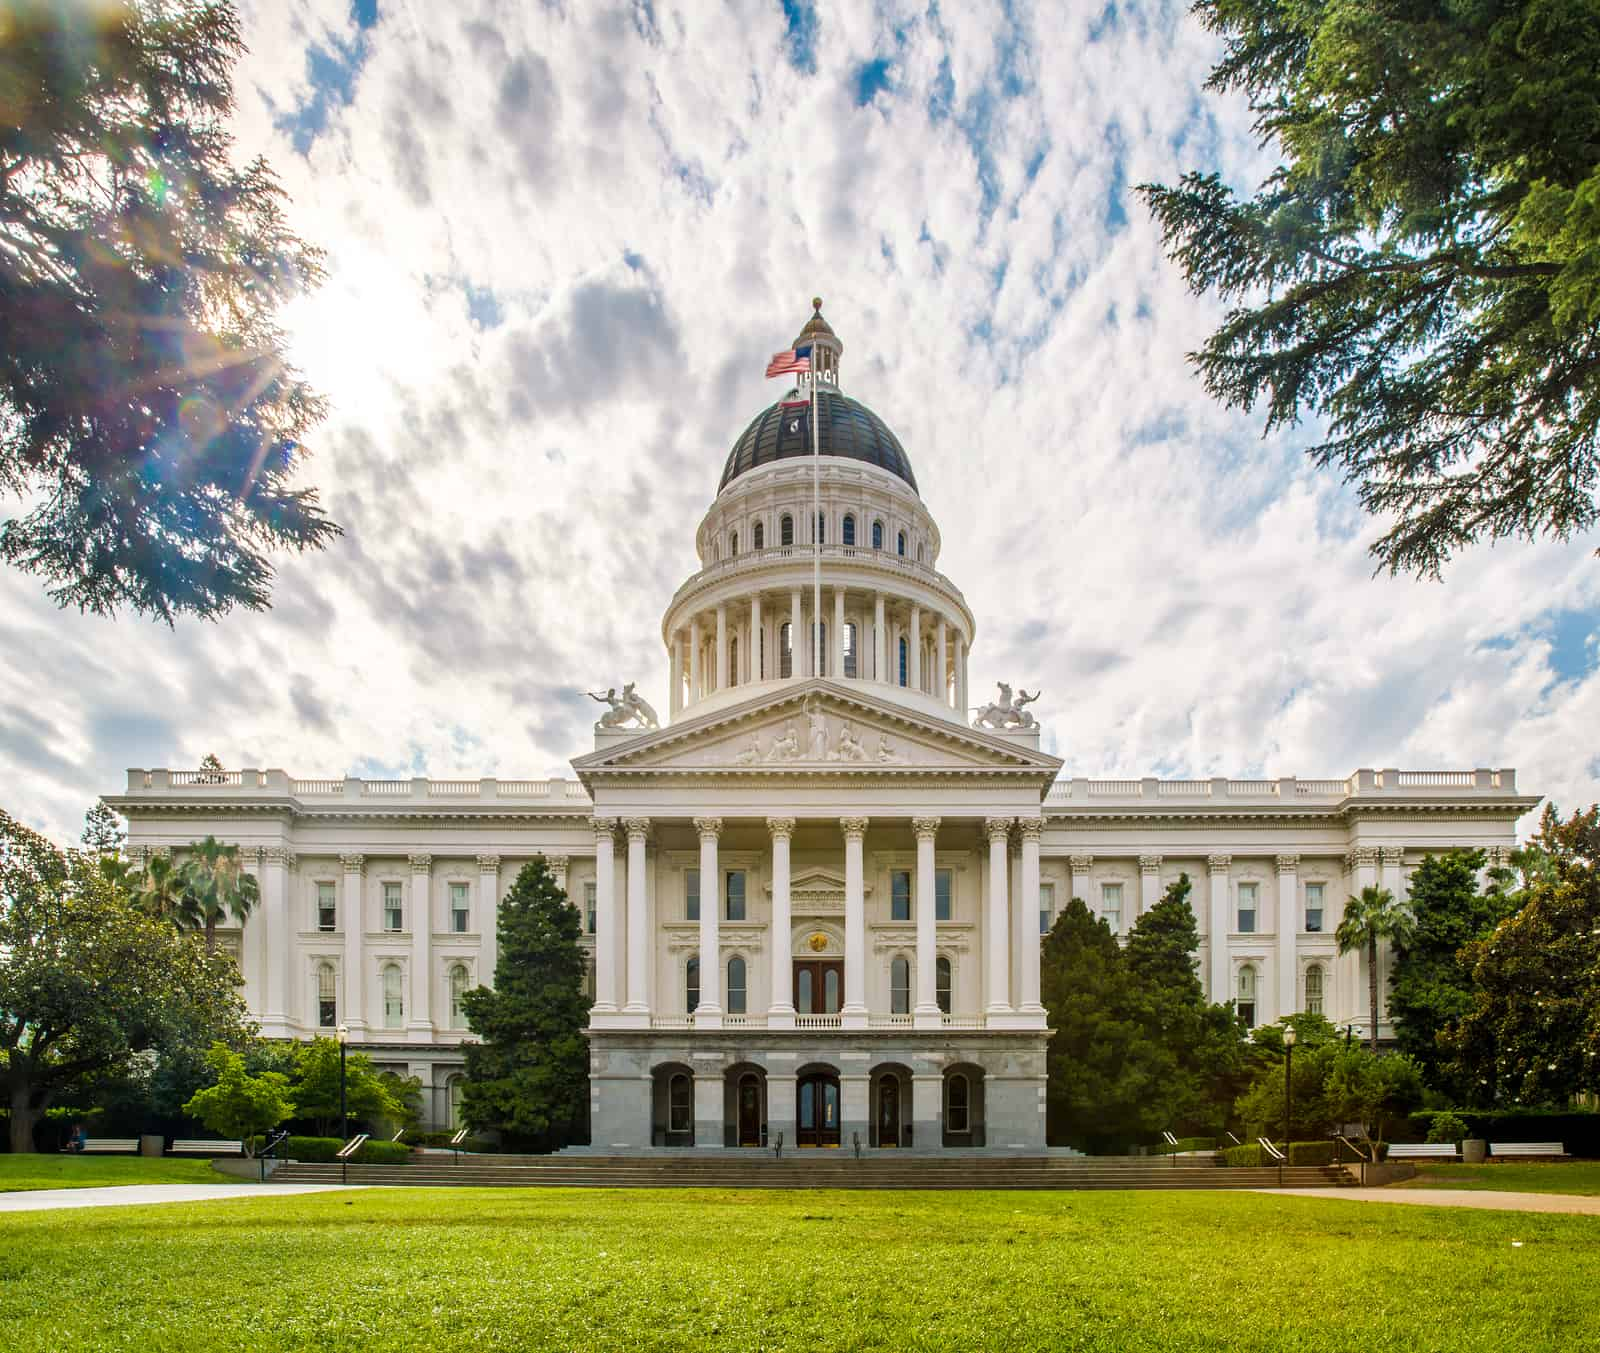 California Attorney General Becerra Urges U.S. Supreme Court to Require Out-Of-State & Online Retailers to Pay State Sales & Use Taxes